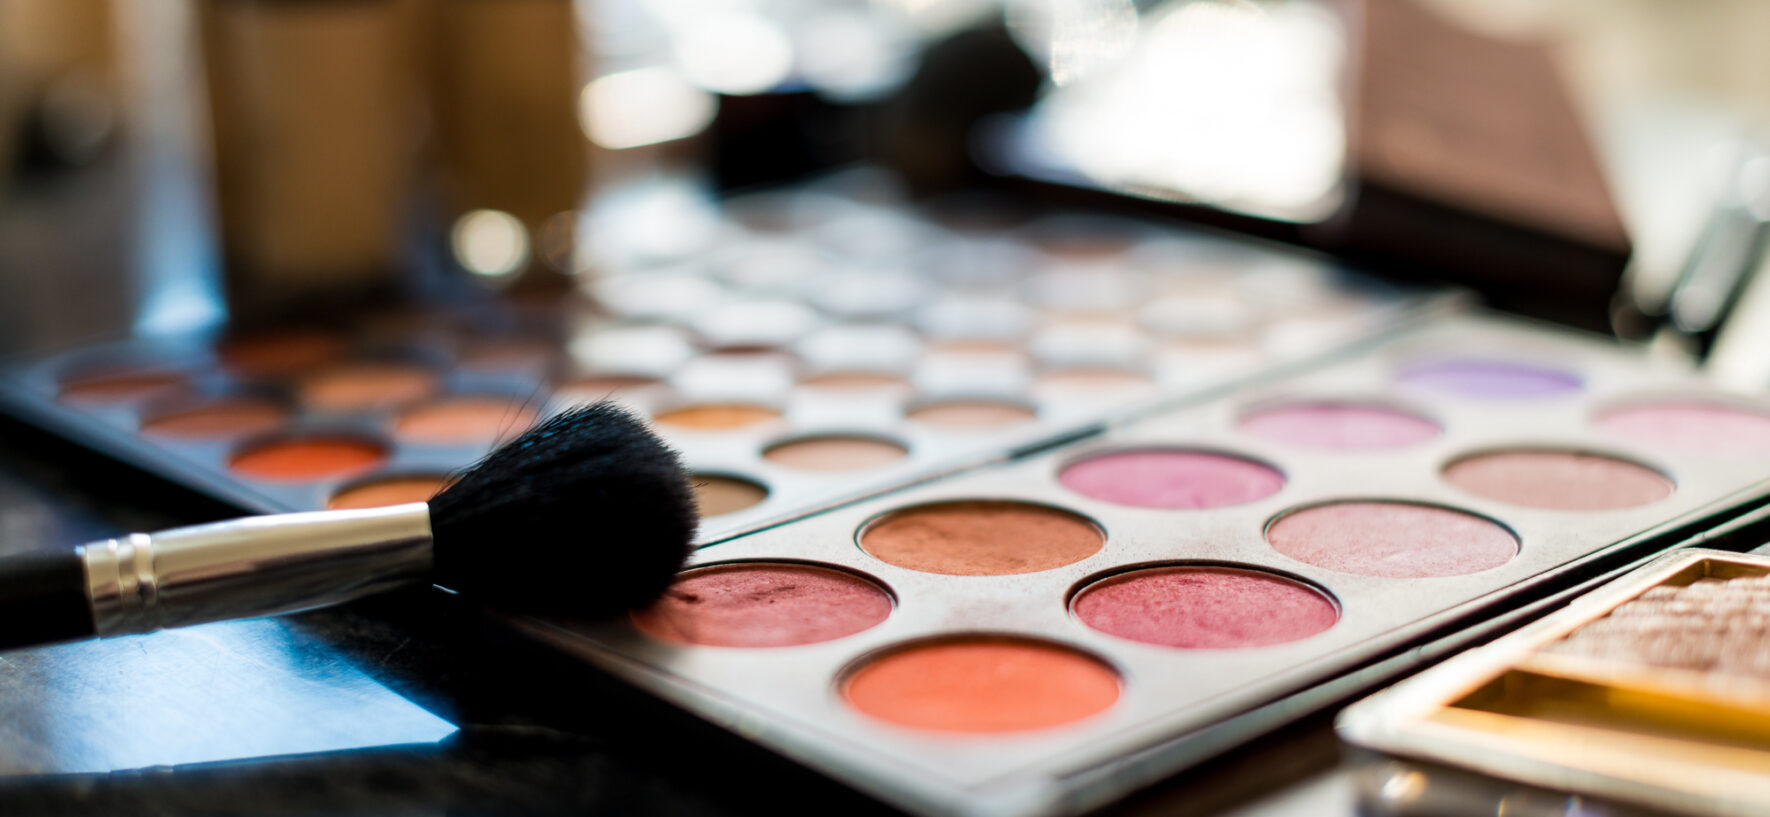 What Can You Do To Enhance Your Beauty With a Makeup Artist Course?